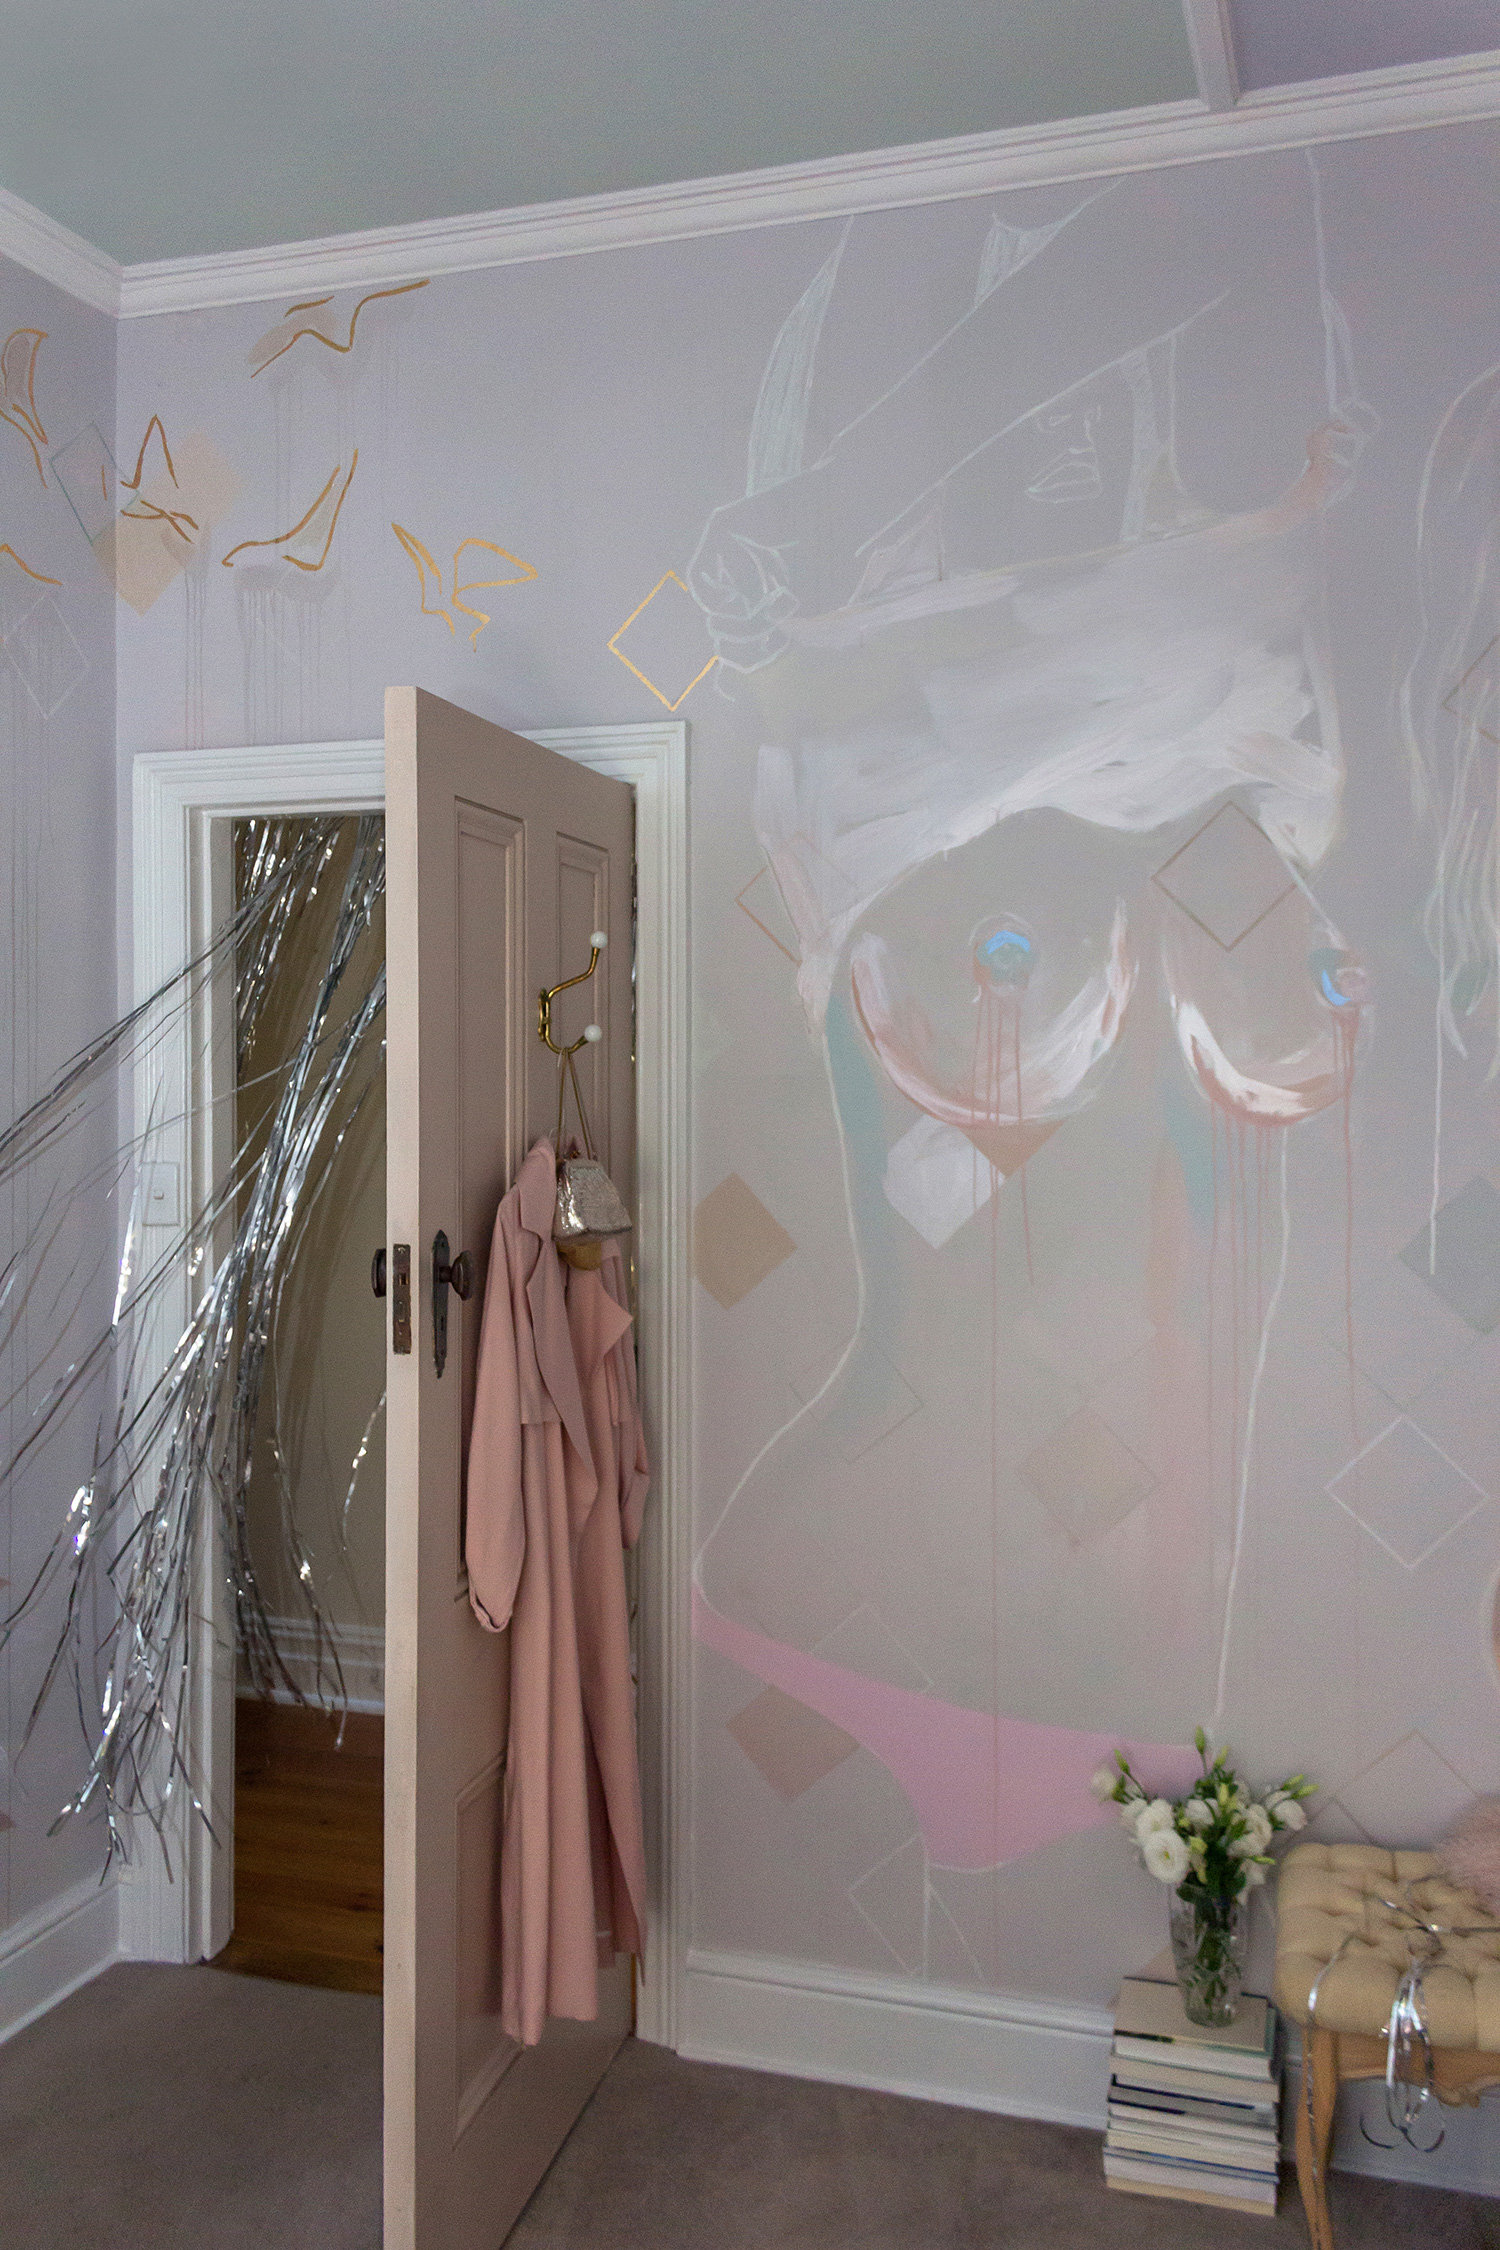 Topless woman mural - female is taking her top off and exposing her naked breasts. Painted in pastel and metallic colours with gold leaf birds flying out from the figure. A sparkly silver curtain hangs from the doorway.